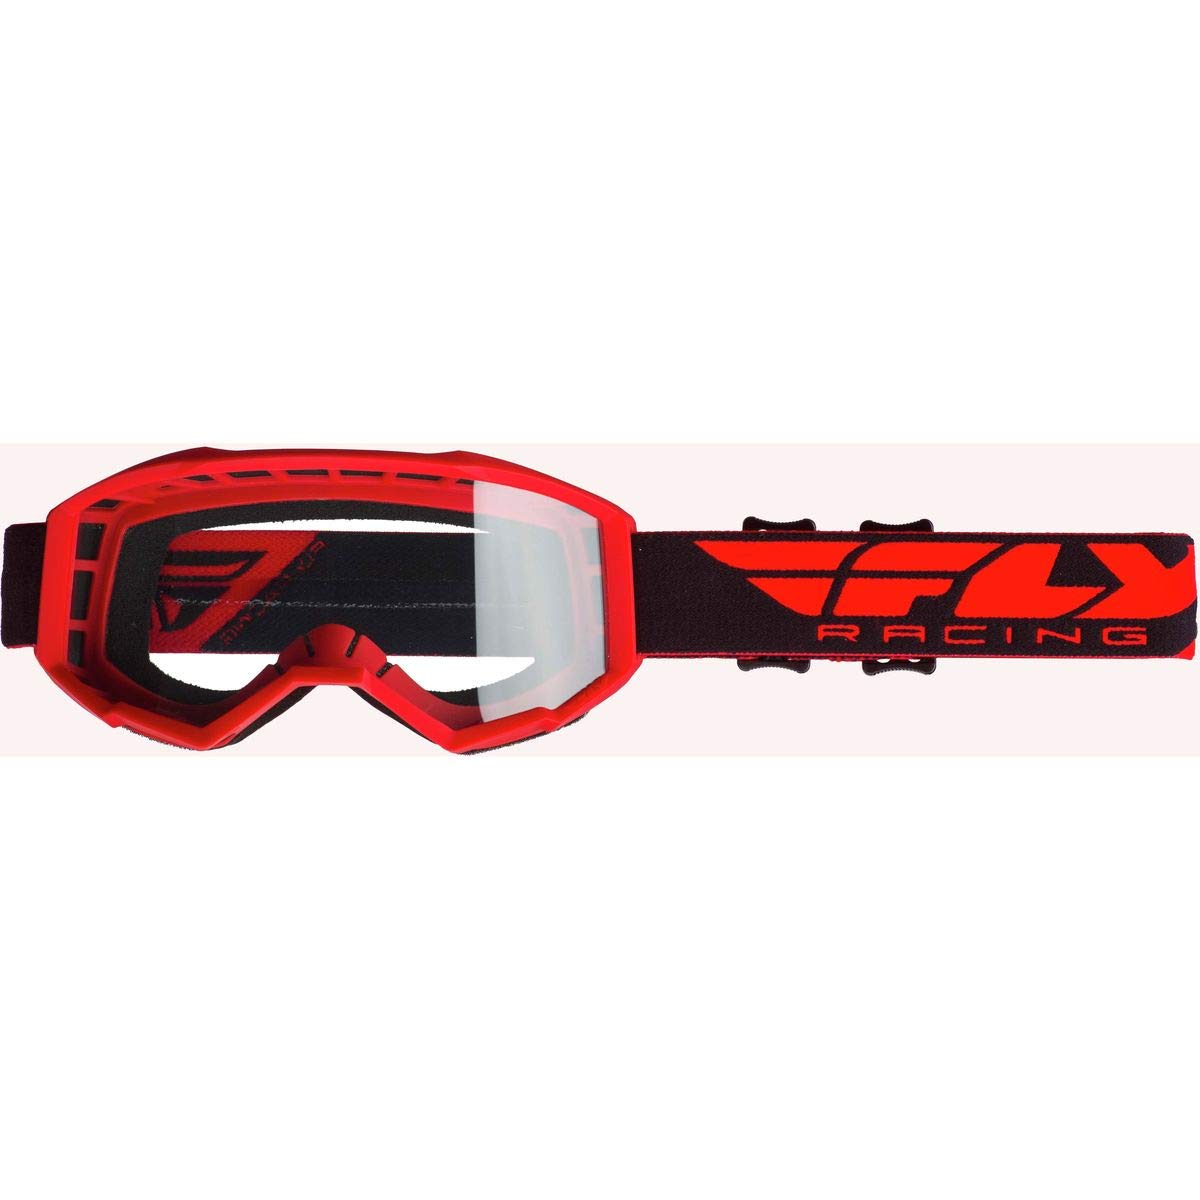 Pick Youth//Adult//Color Motocross Offroad ATV 2020 Fly Racing Focus Goggles